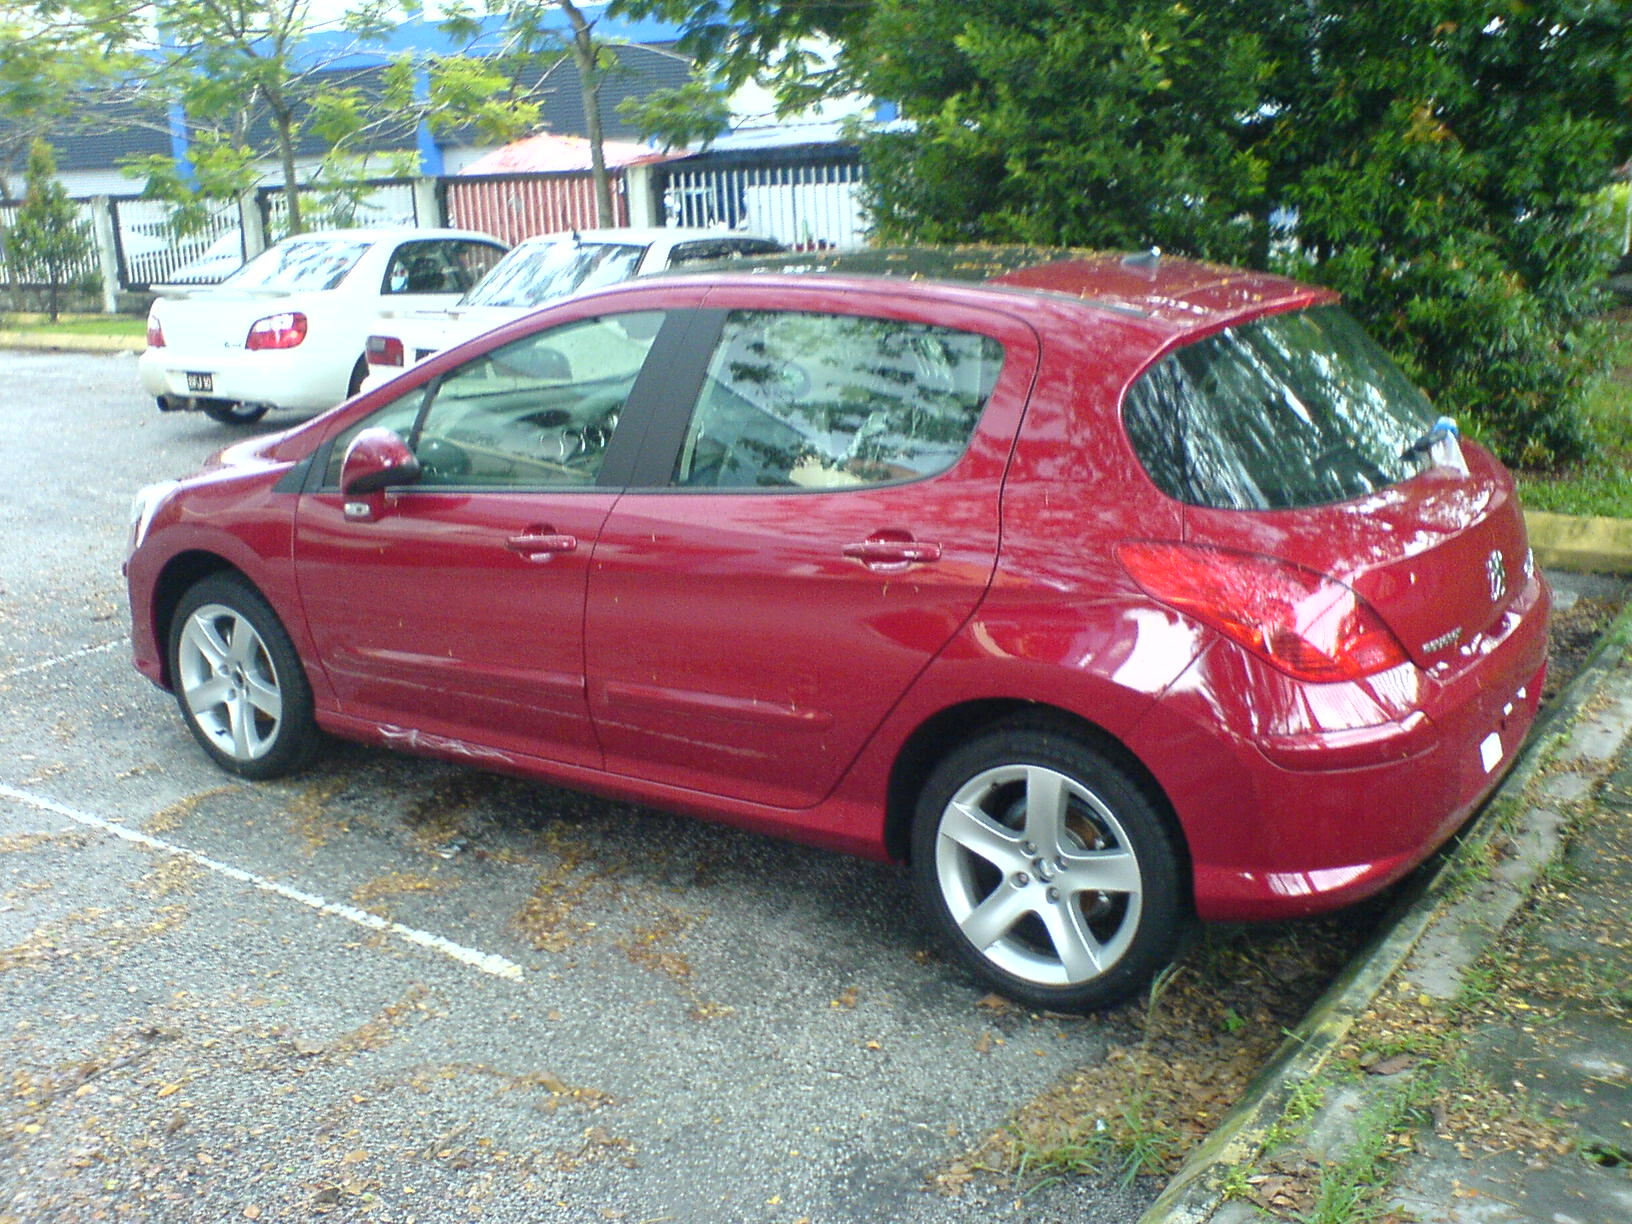 peugeot 308 1.6thp review: performance car or.?